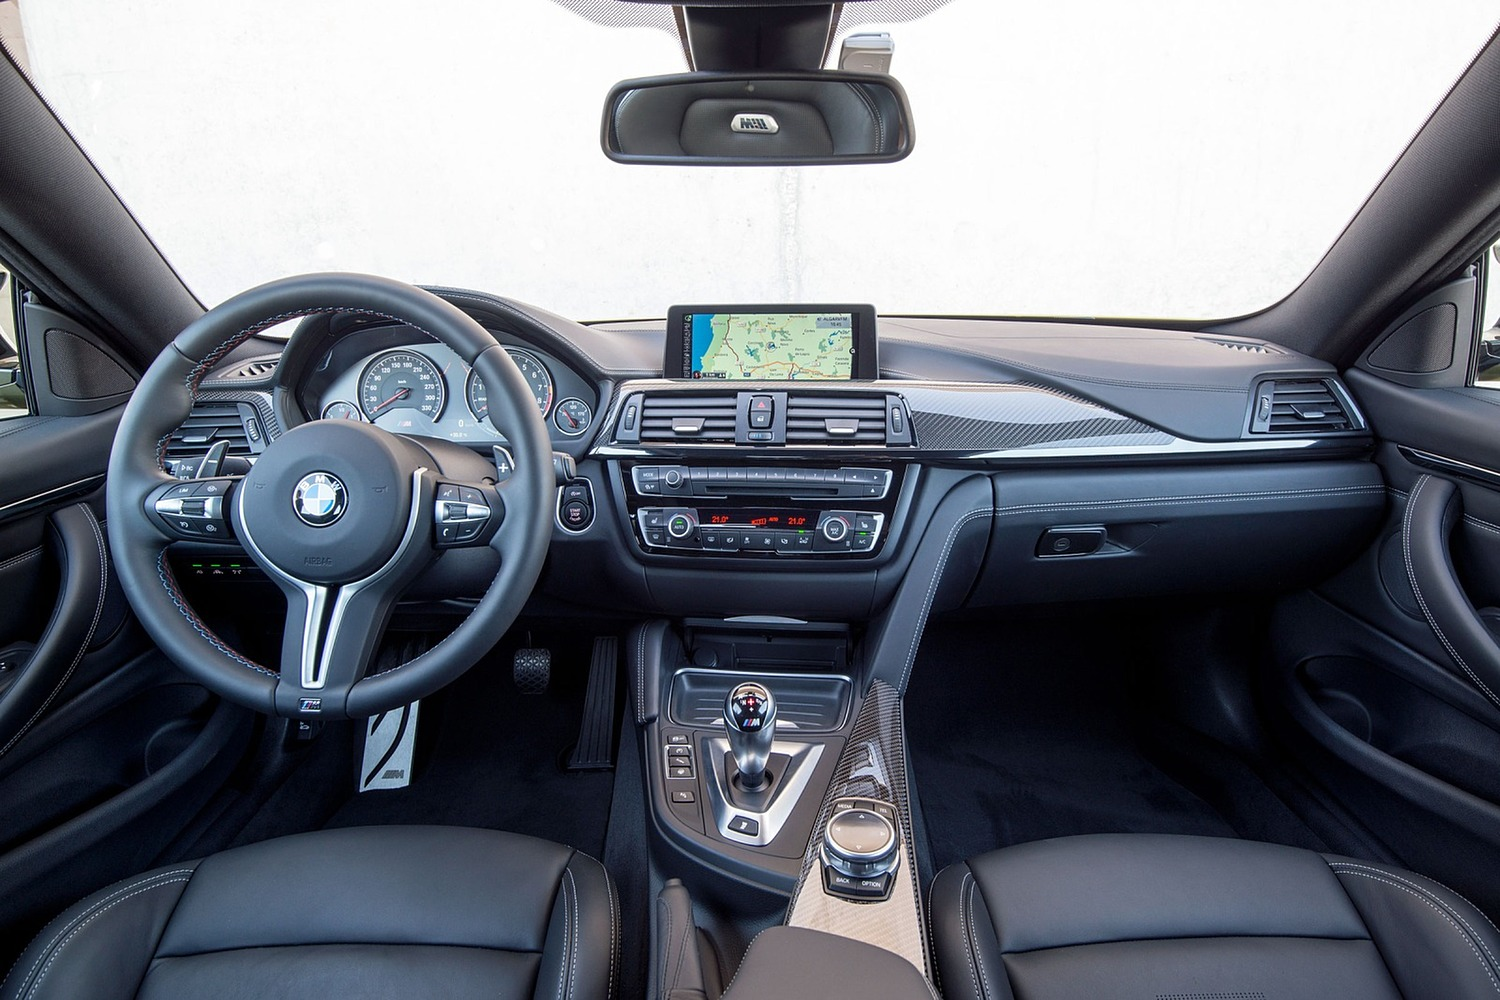 BMW M4 Coupe Dashboard (2016 model year shown)